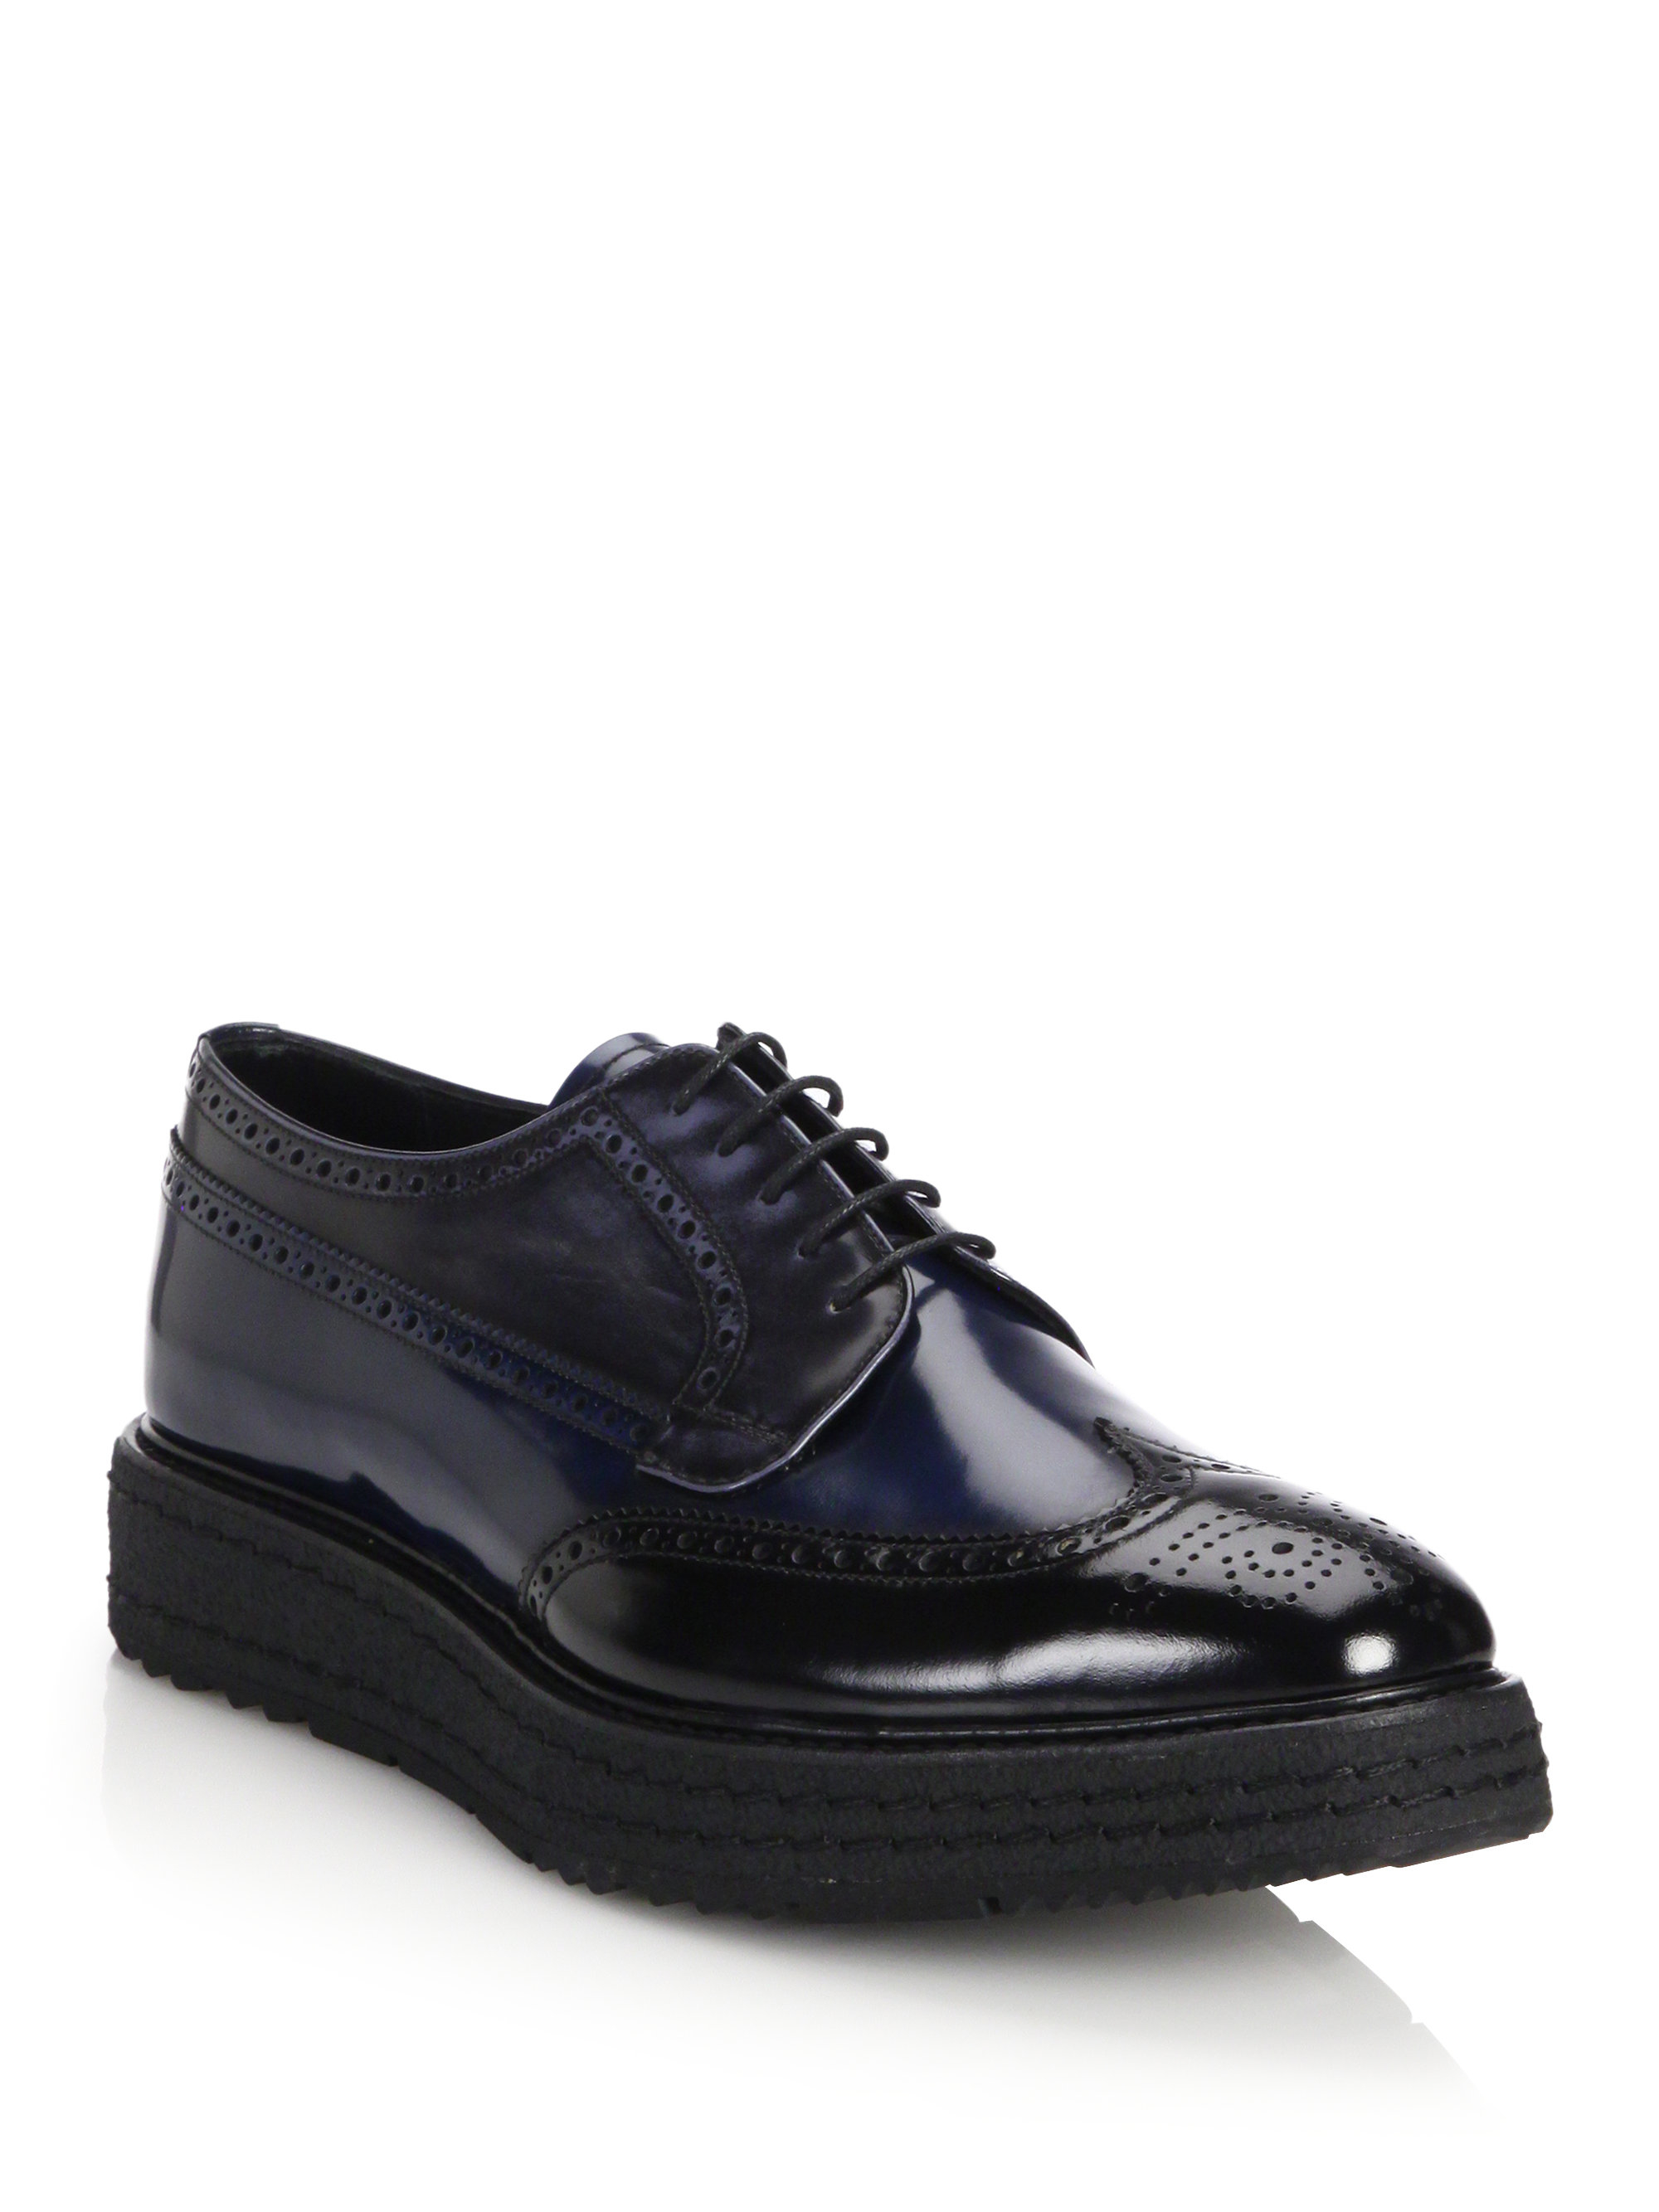 best cheap 854e5 e8323 prada-black-blue-creeper-lug-sole-leather-derby-shoes -black-product-0-227556319-normal.jpeg